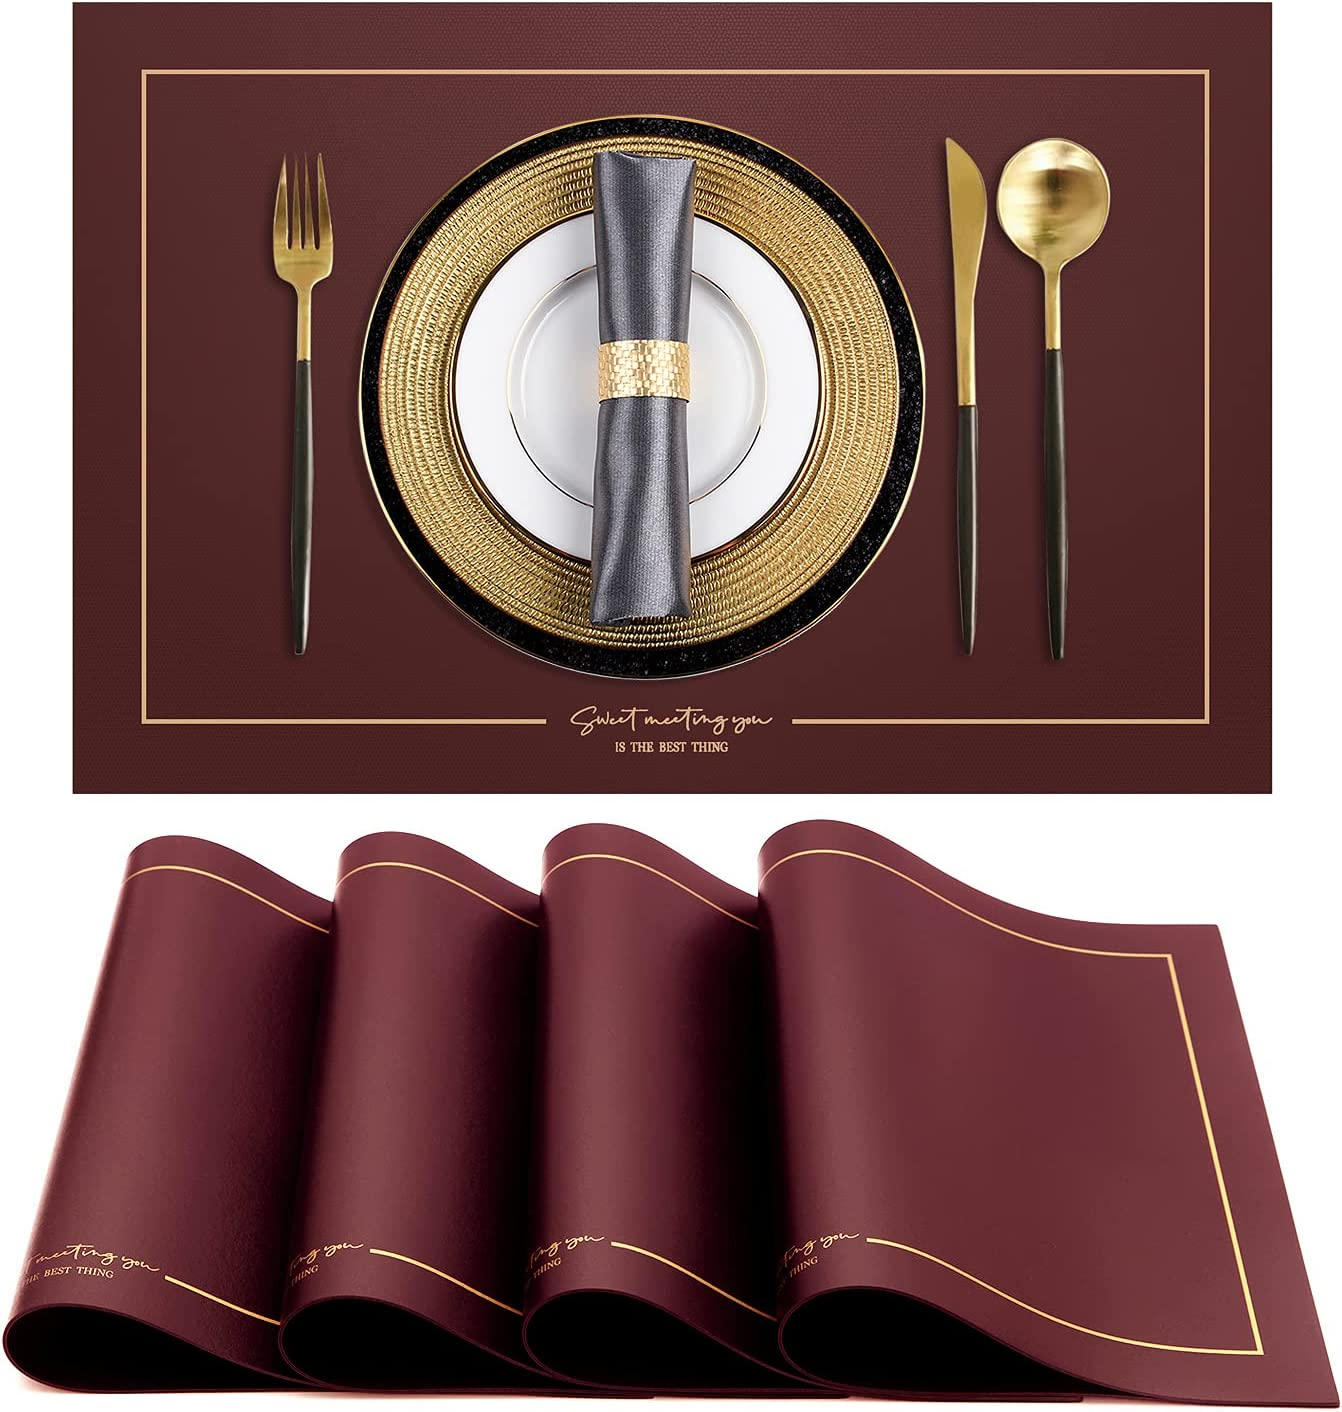 Hokeding Large discharge Denver Mall sale PU Leather Heat Resistant Table Placemats Se for Dining